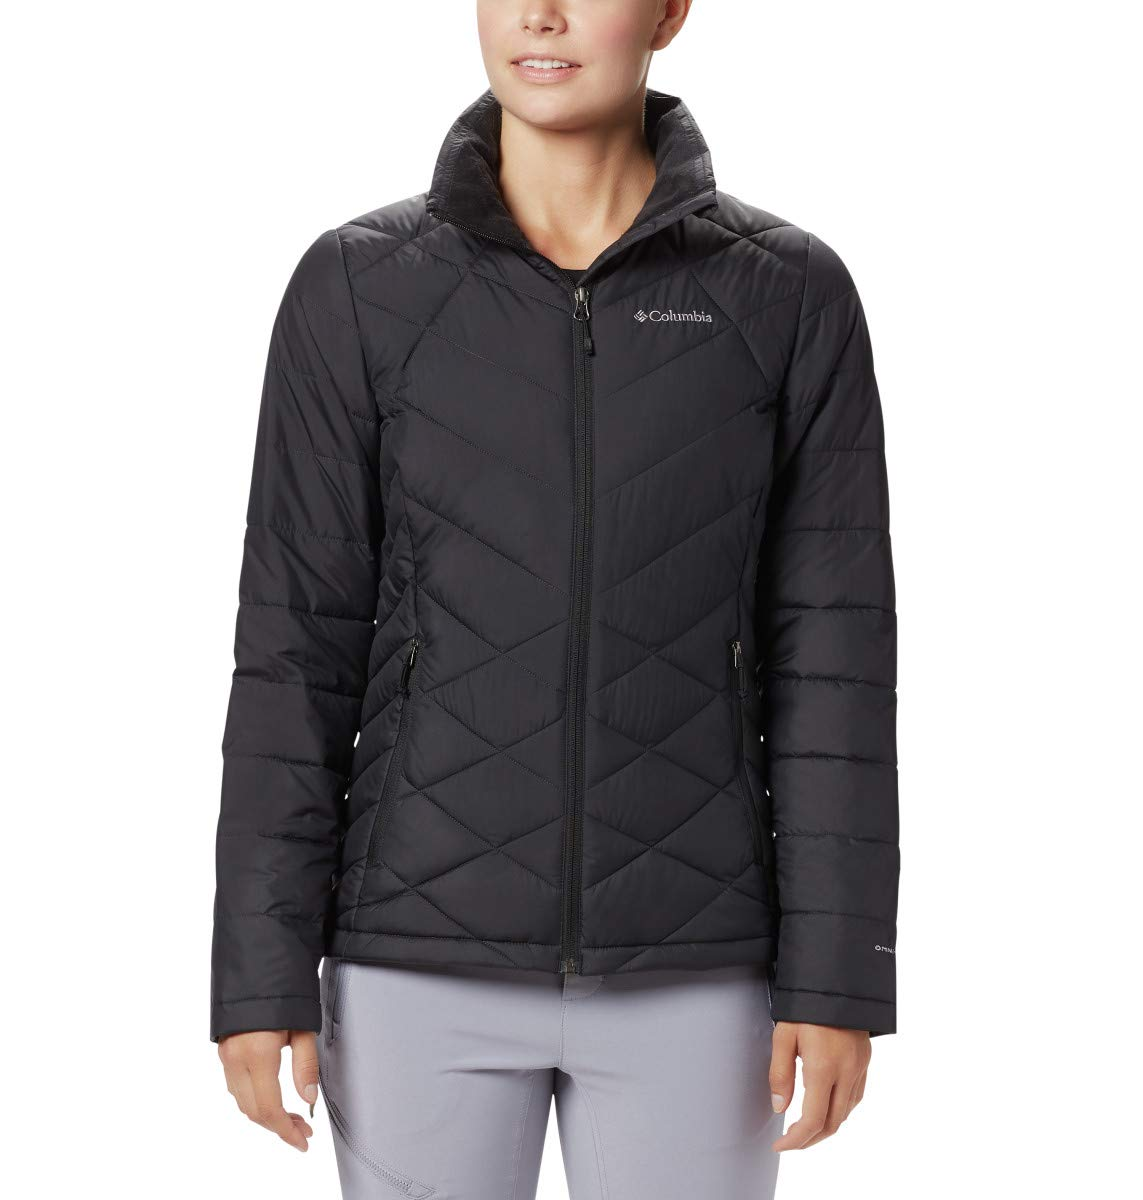 Columbia Women's Heavenly Jacket, Black, 2X by Columbia